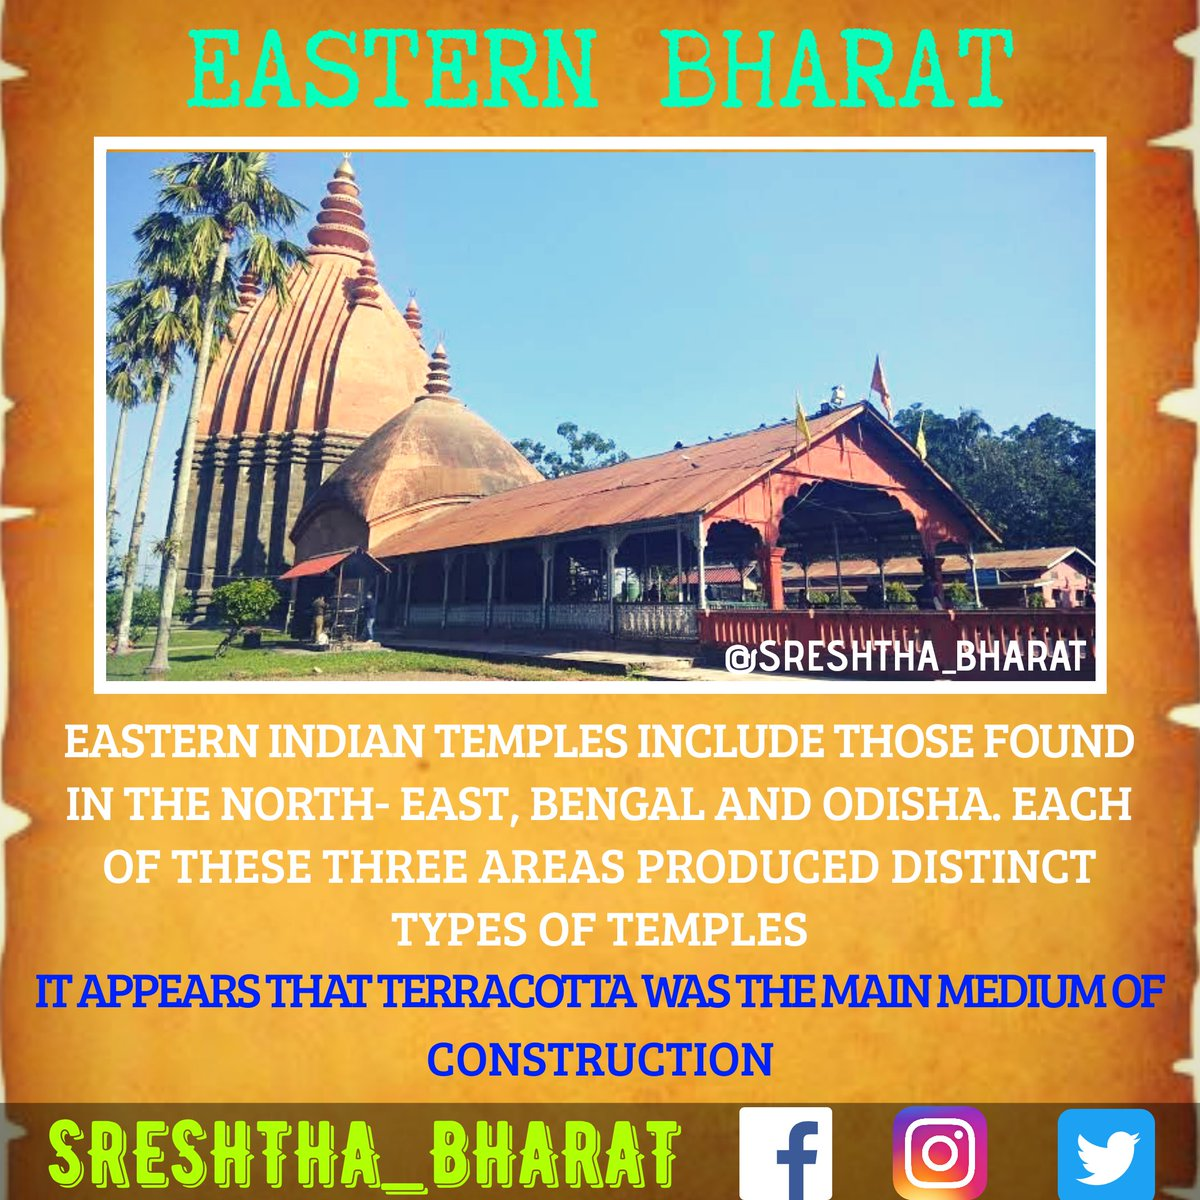 #temple_architecture  We will be getting closer to the Great Temple Architecture of our Sreshtha Bharat  Follow @Sreshthabharat on Facebook | Instagram | Twitter 🙏  #indianculture #indianarchitecture #hinduarchitecture #temple  #worship #templeworship #dravida #mandir #devasthan https://t.co/kzpIagSNNY